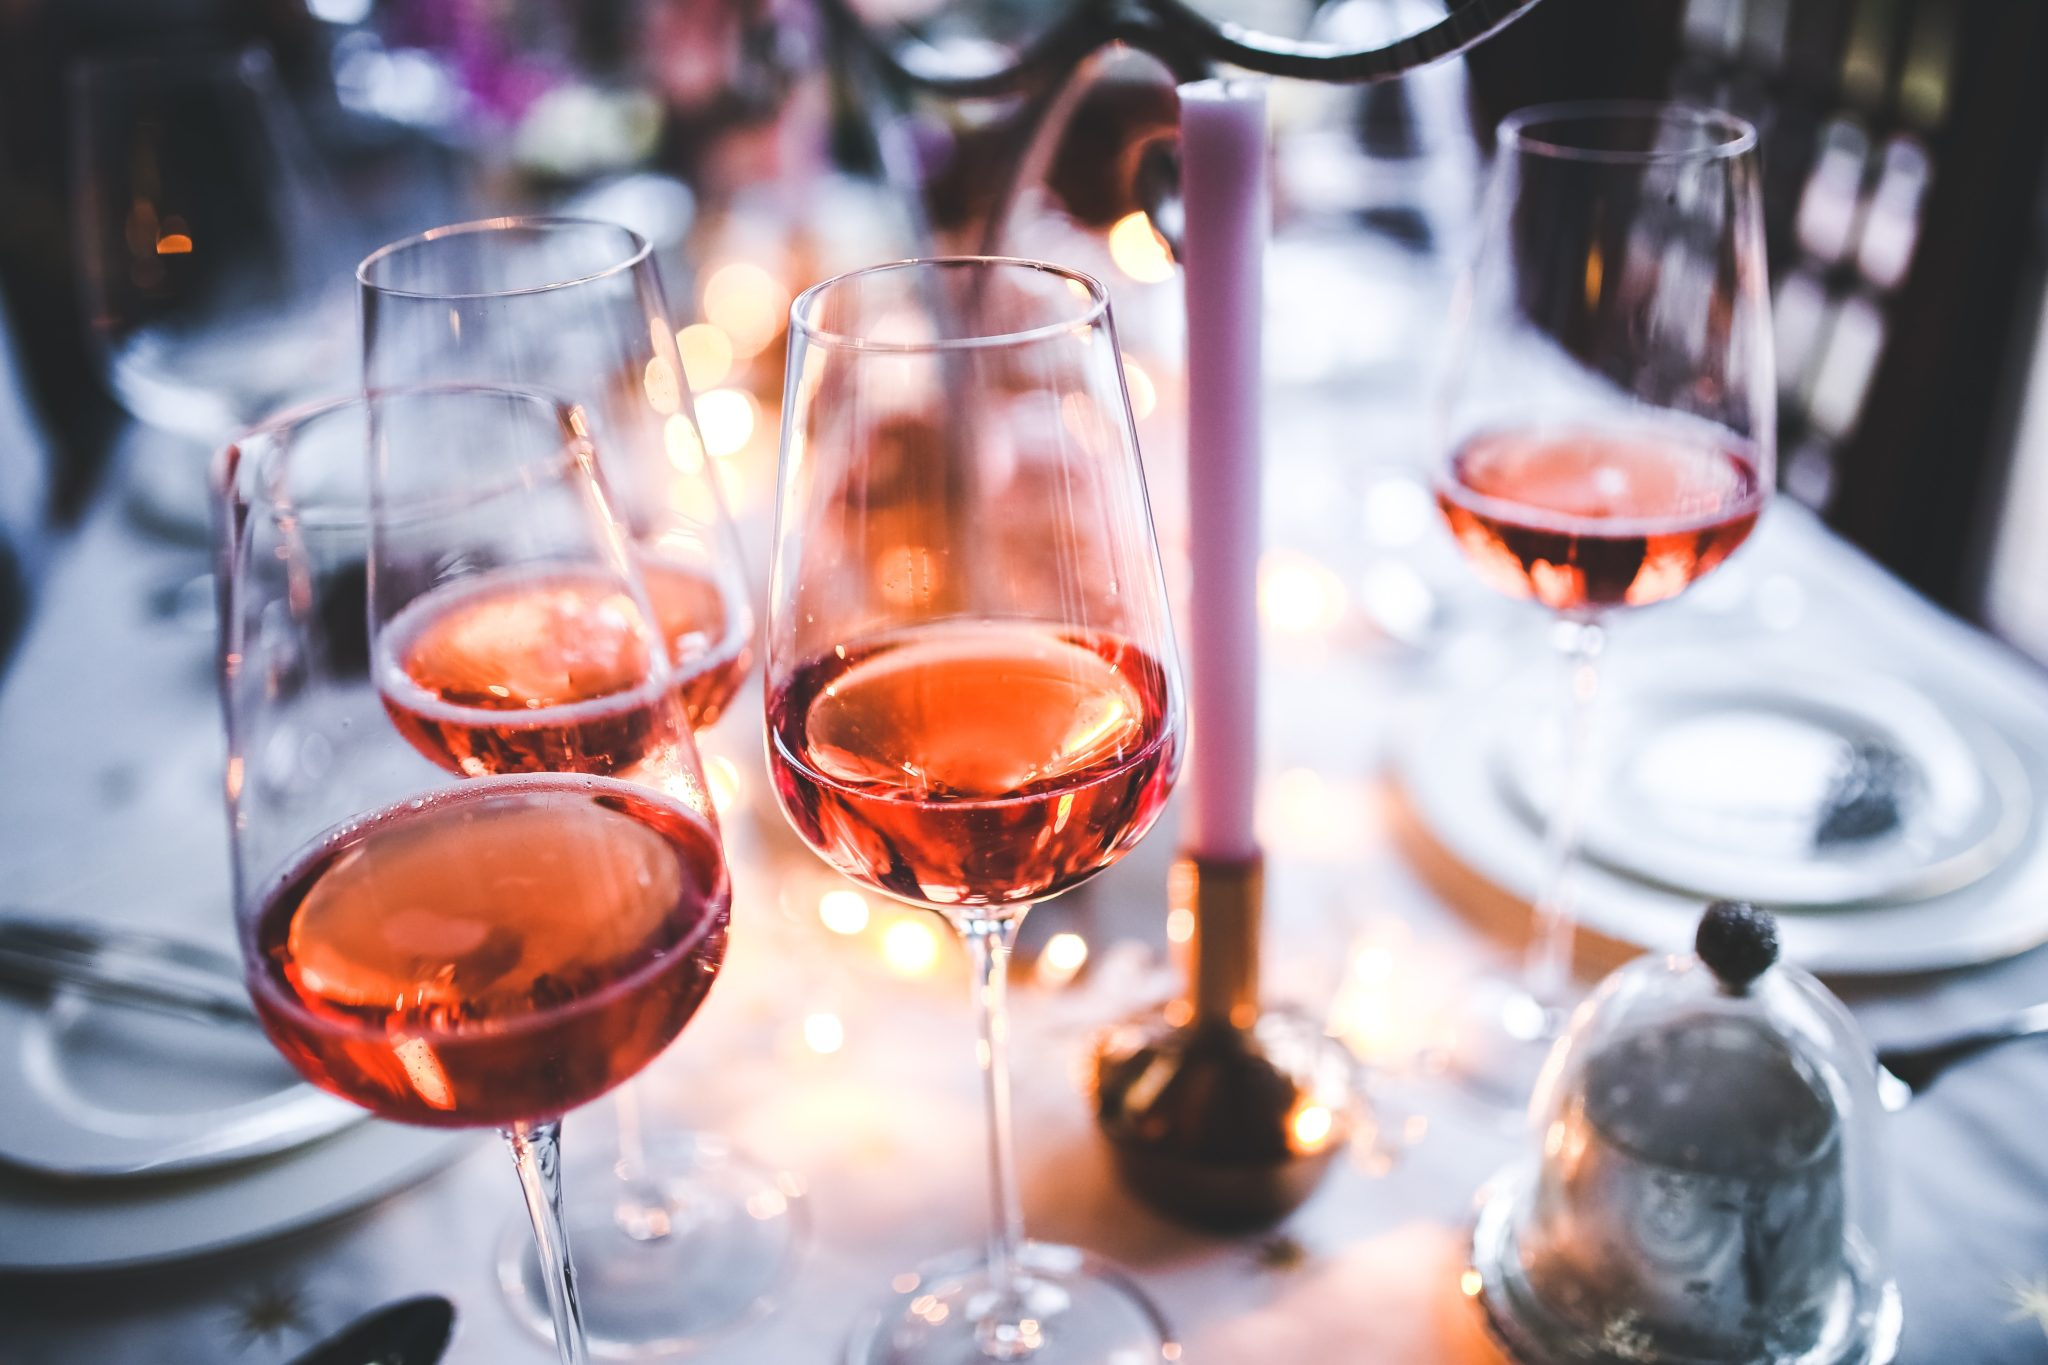 Celebrate Spring at Harbor East's Rose in May